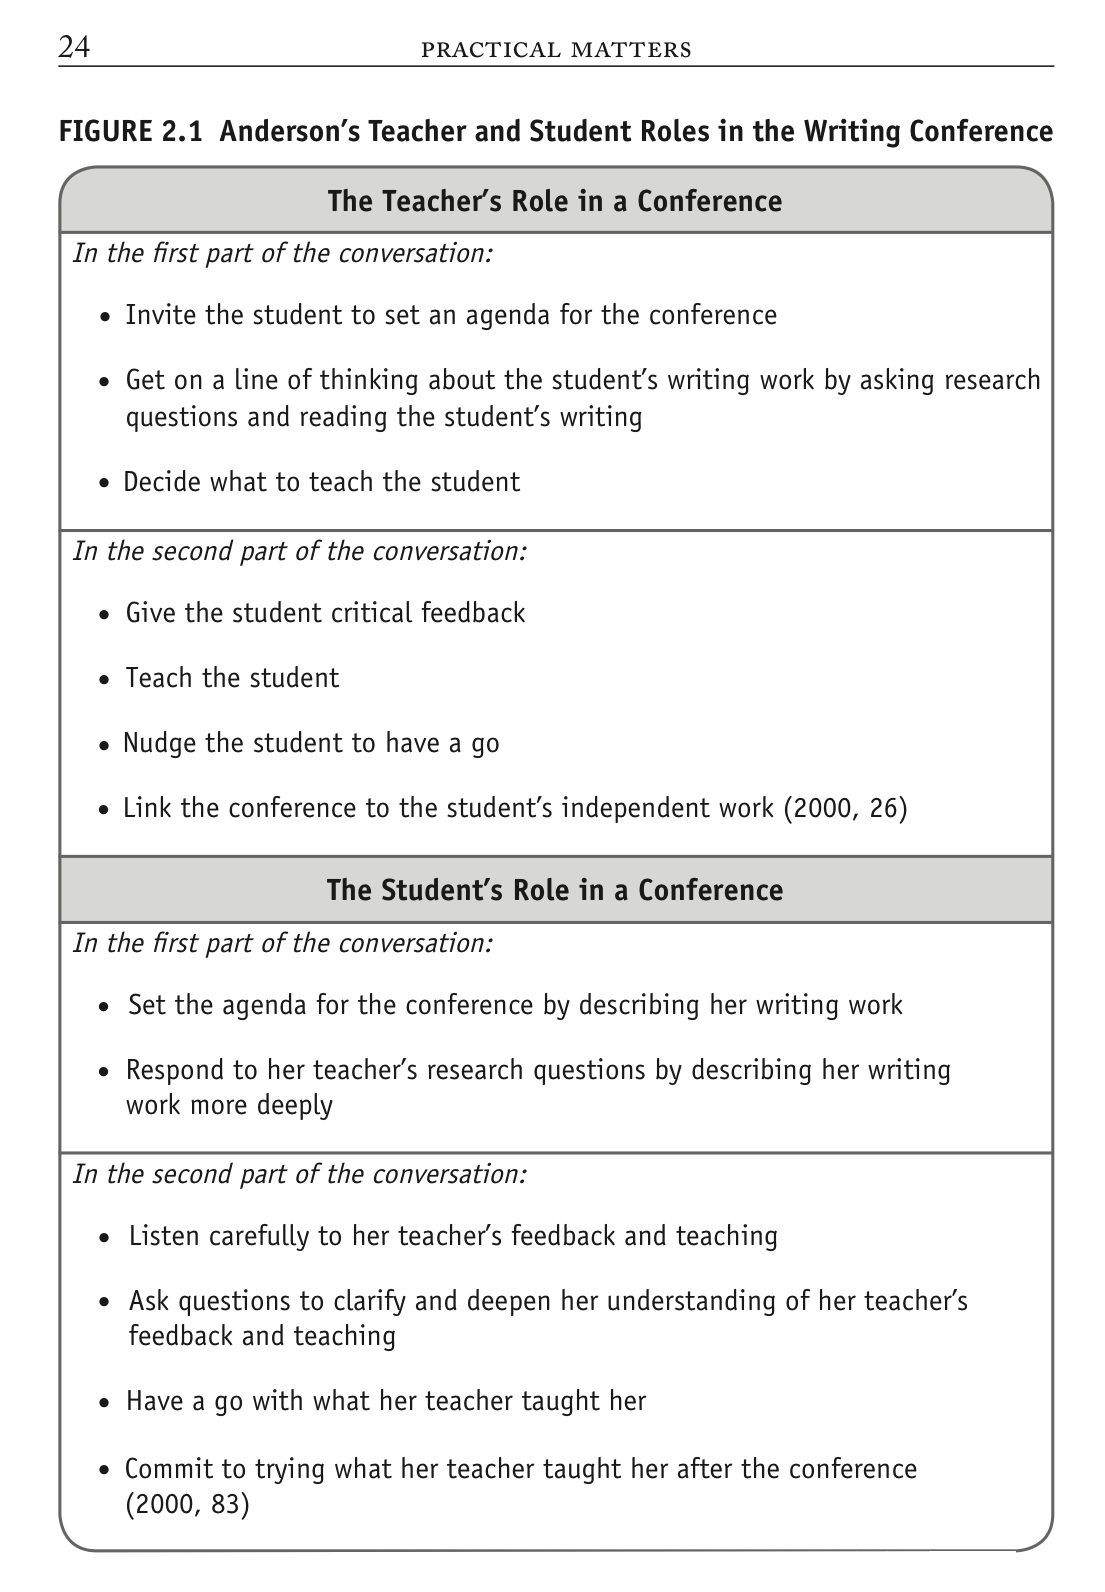 """the role of teacher in written feedback Published: tue, 18 apr 2017 teacher written feedback plays an essential role in a student's writing process it helps students """"identify their own strengths and weaknesses, which, in case of."""